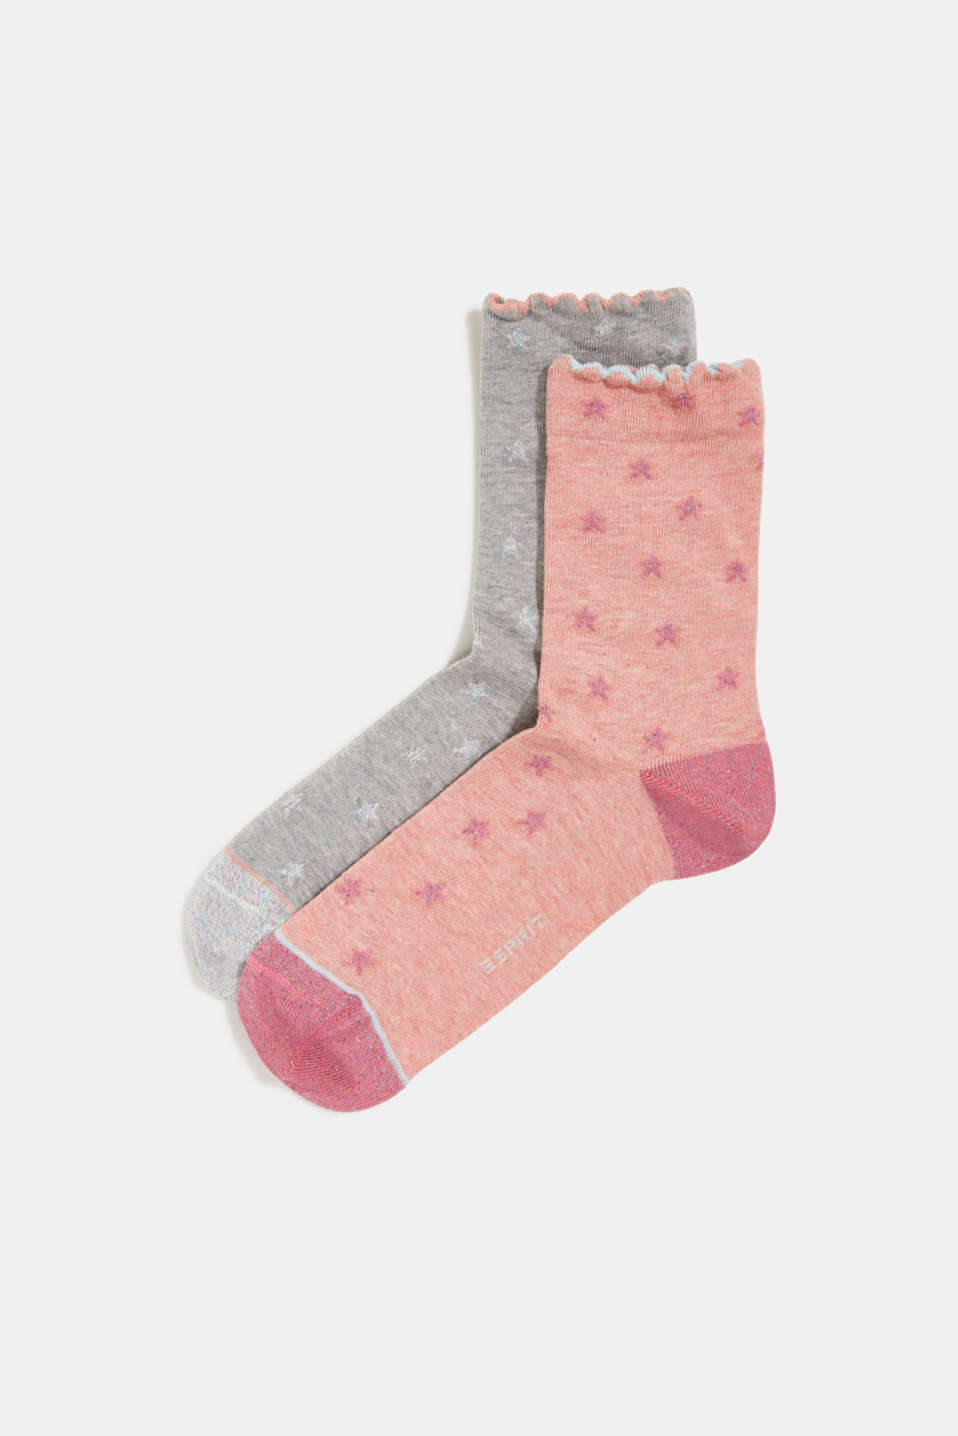 Esprit - 2-pack of socks with glitter details